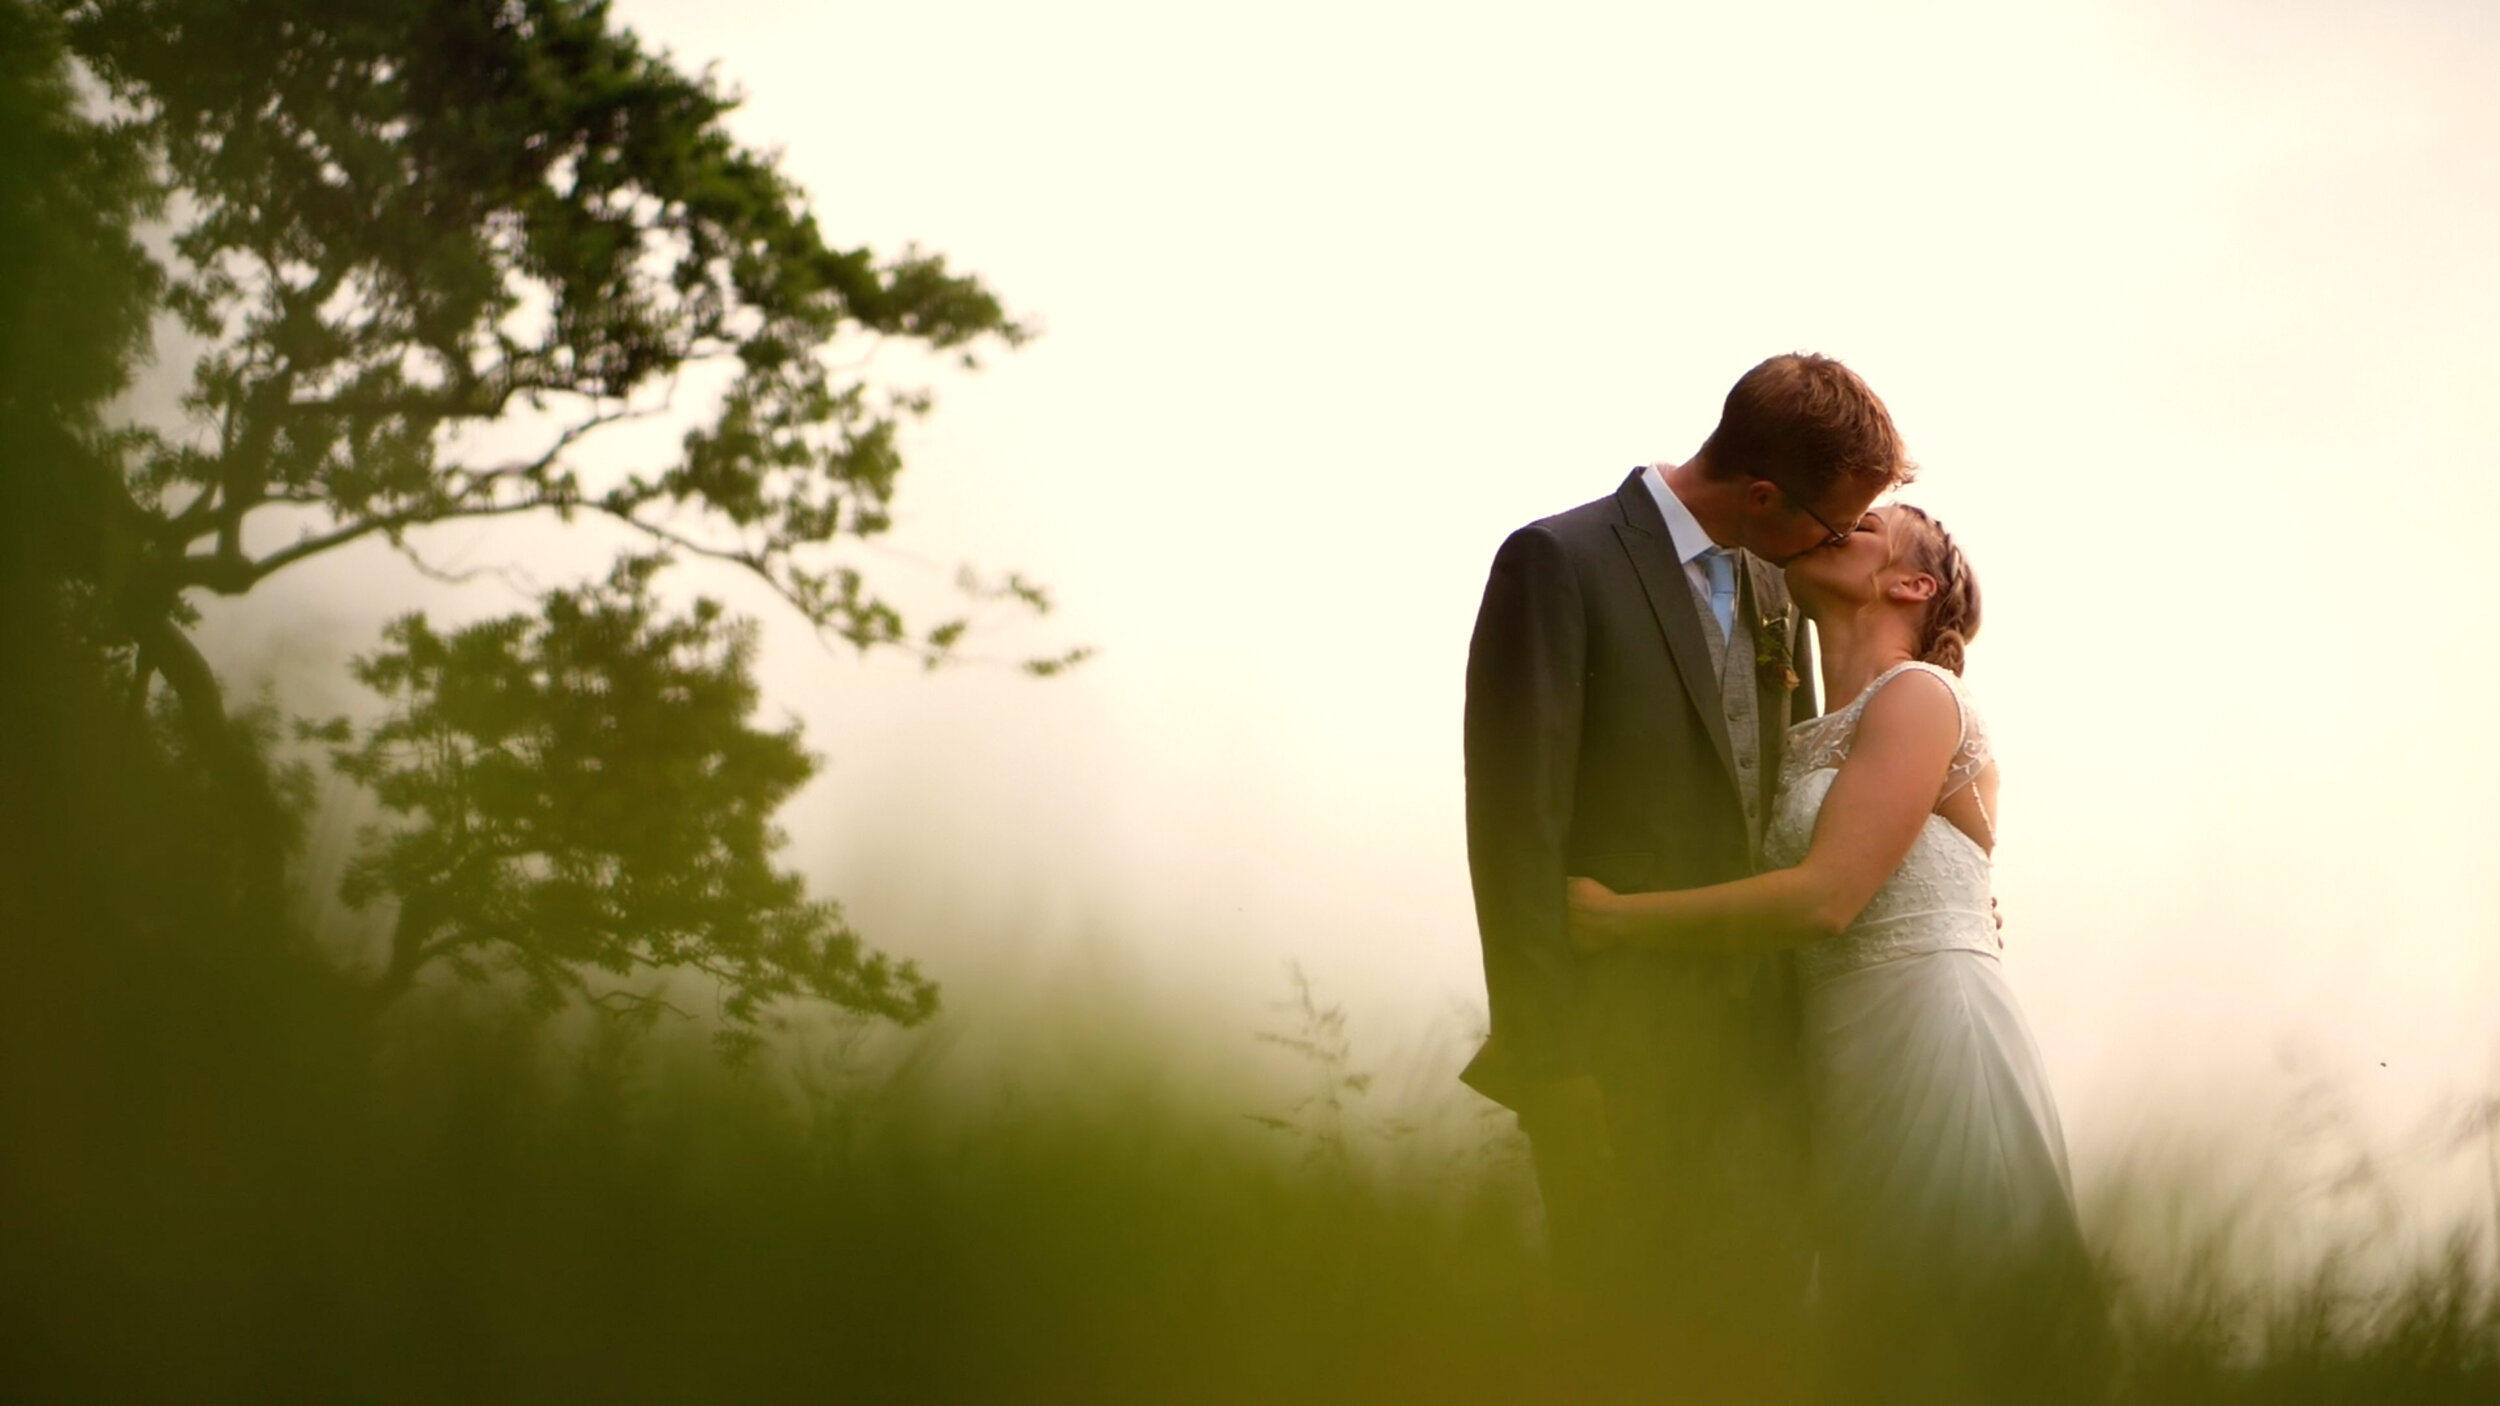 David and Lisa share a kiss amidst an overgrown field. The sun setting behind them, and the trees waving in the wind.